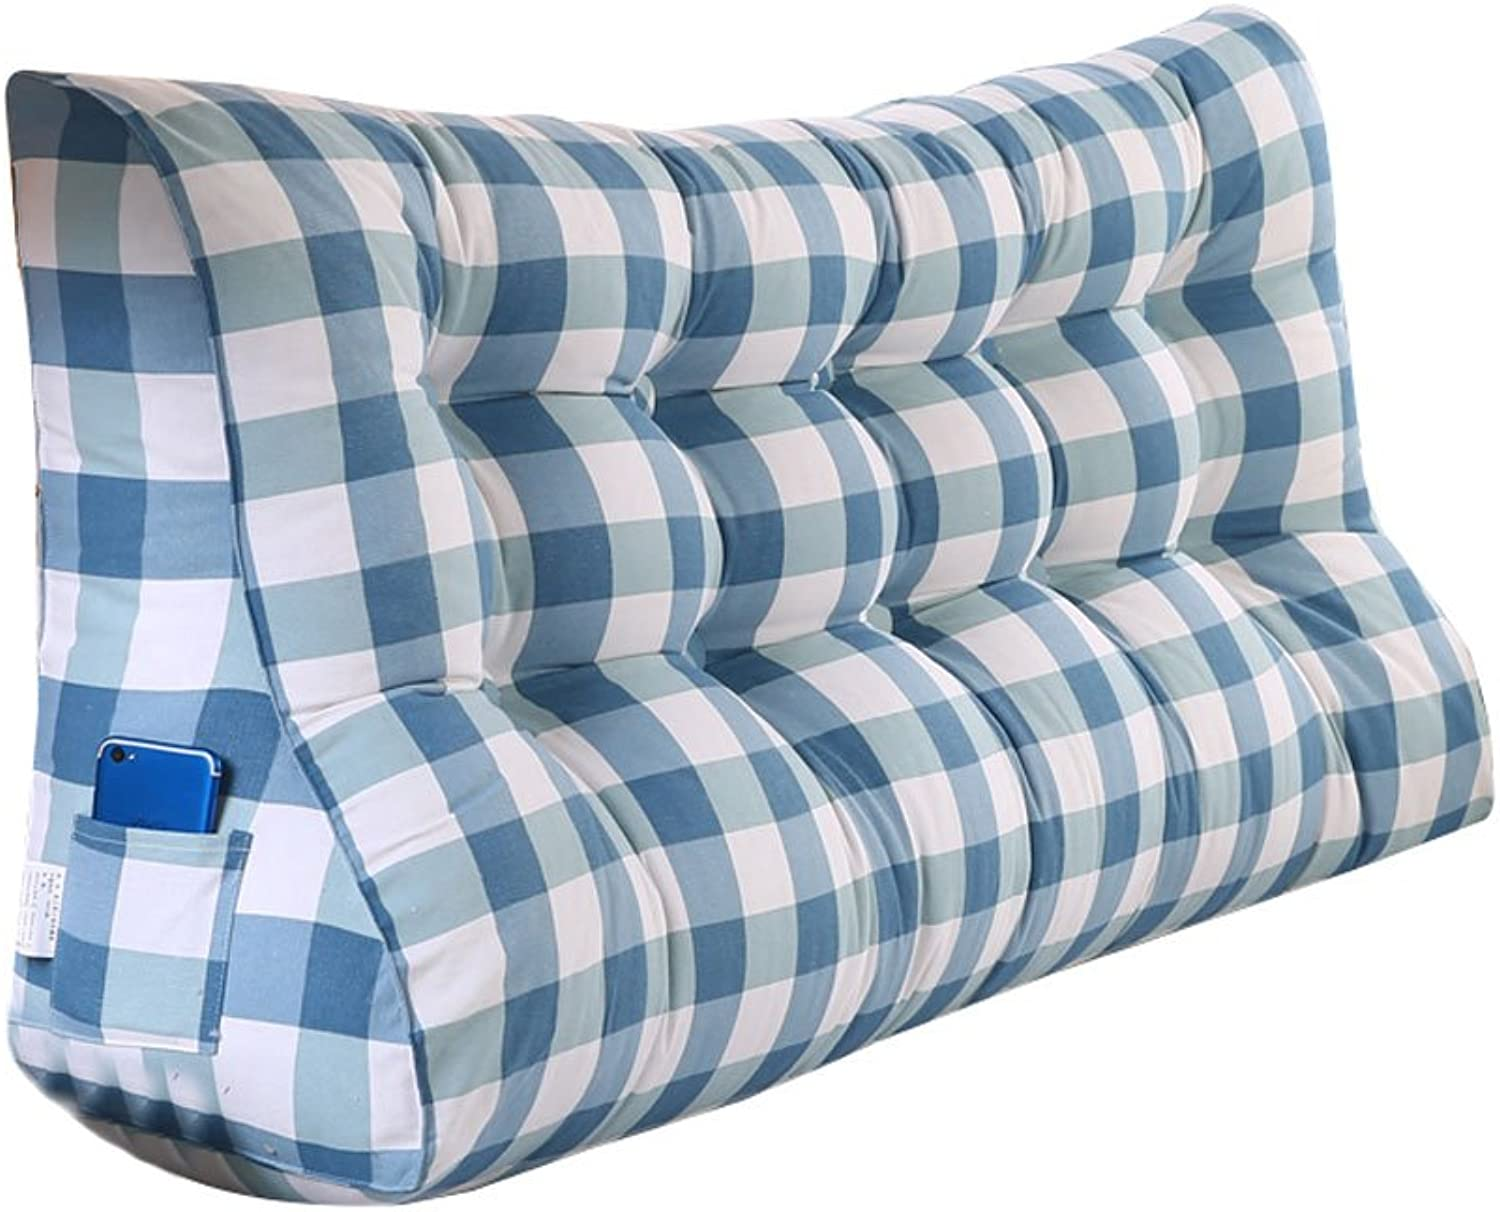 DDSS Bed cushion bluee Plaid Triangular Bed Cushion Bedside Cushion Pillow Tatami Backrest Lumbar Pillow Predection Waist Sofa Back PP Cotton  -  (Size   55CM)